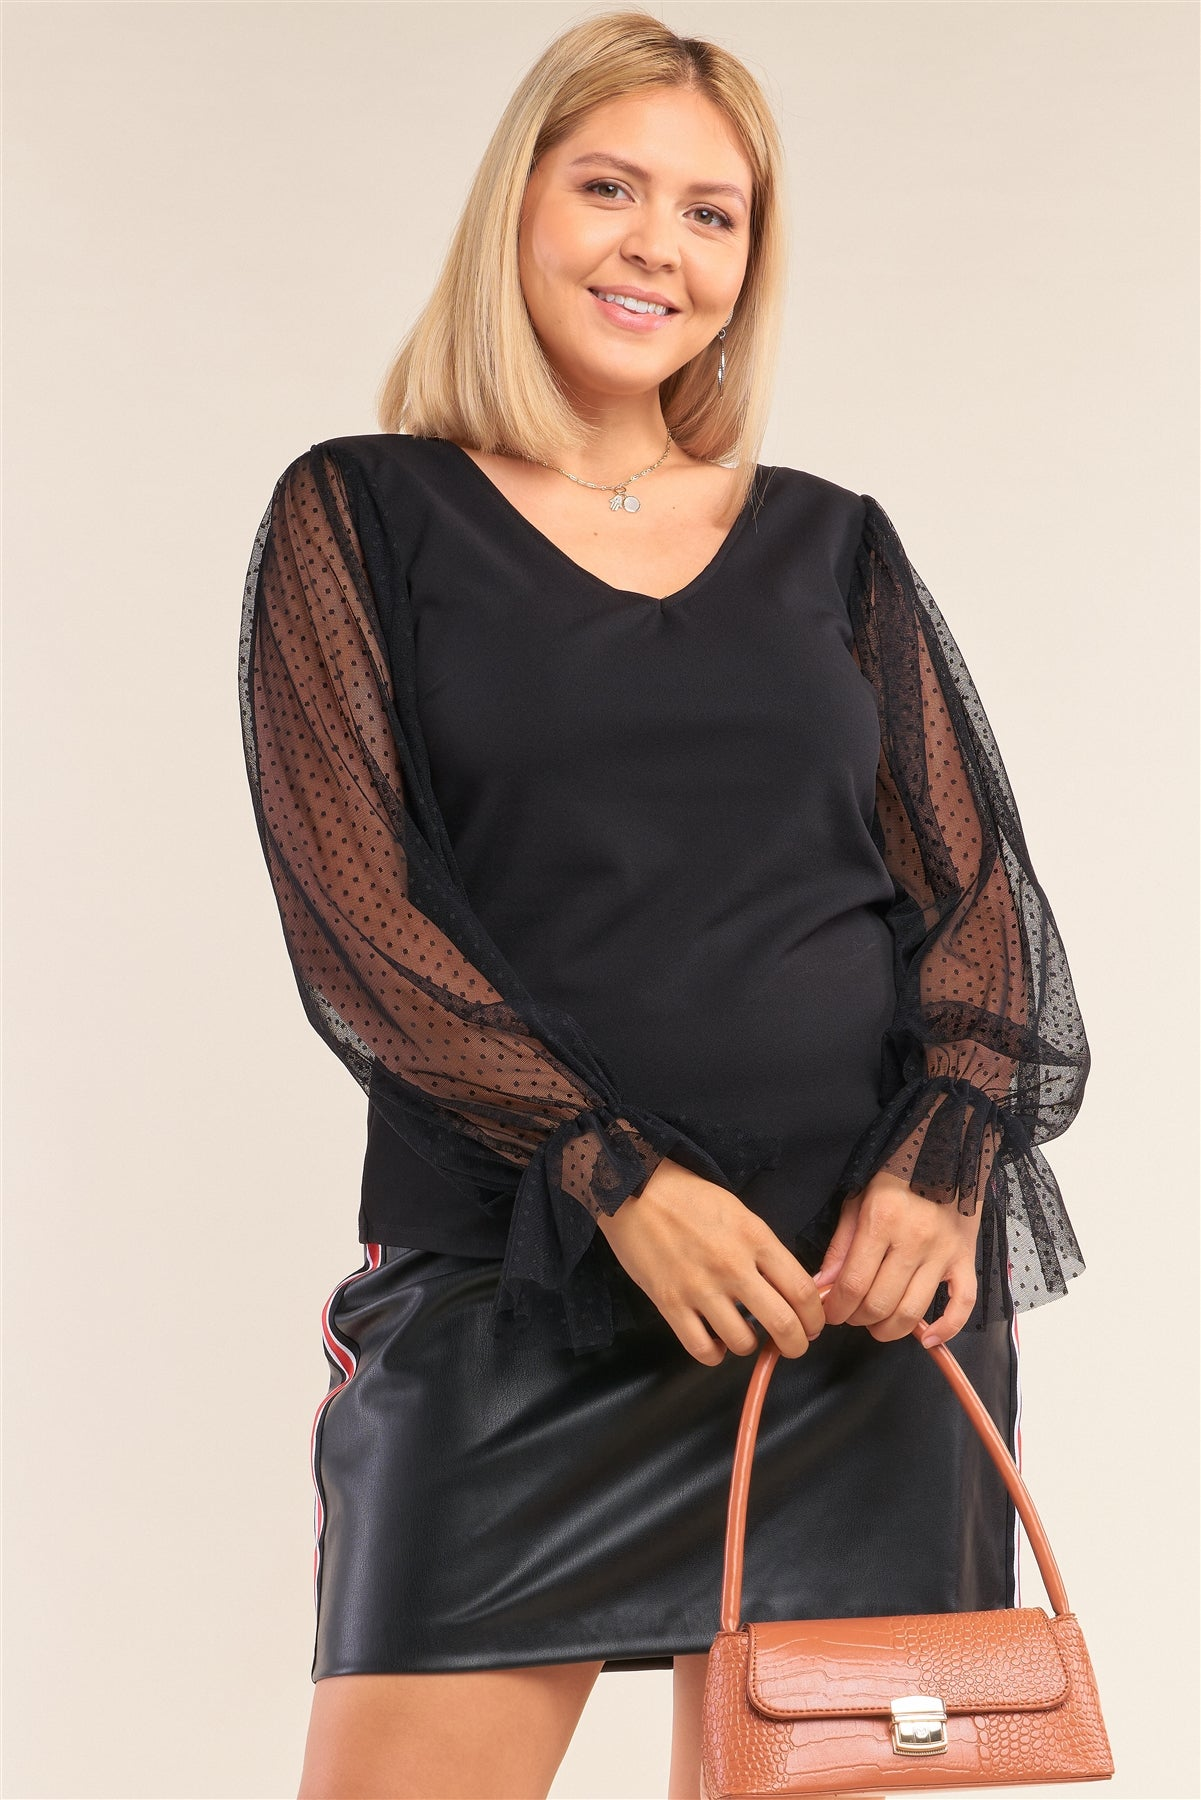 Plus Size Relaxed Fit Deep Plunge V-neck Long Polka Dot Mesh Balloon Sleeve Top